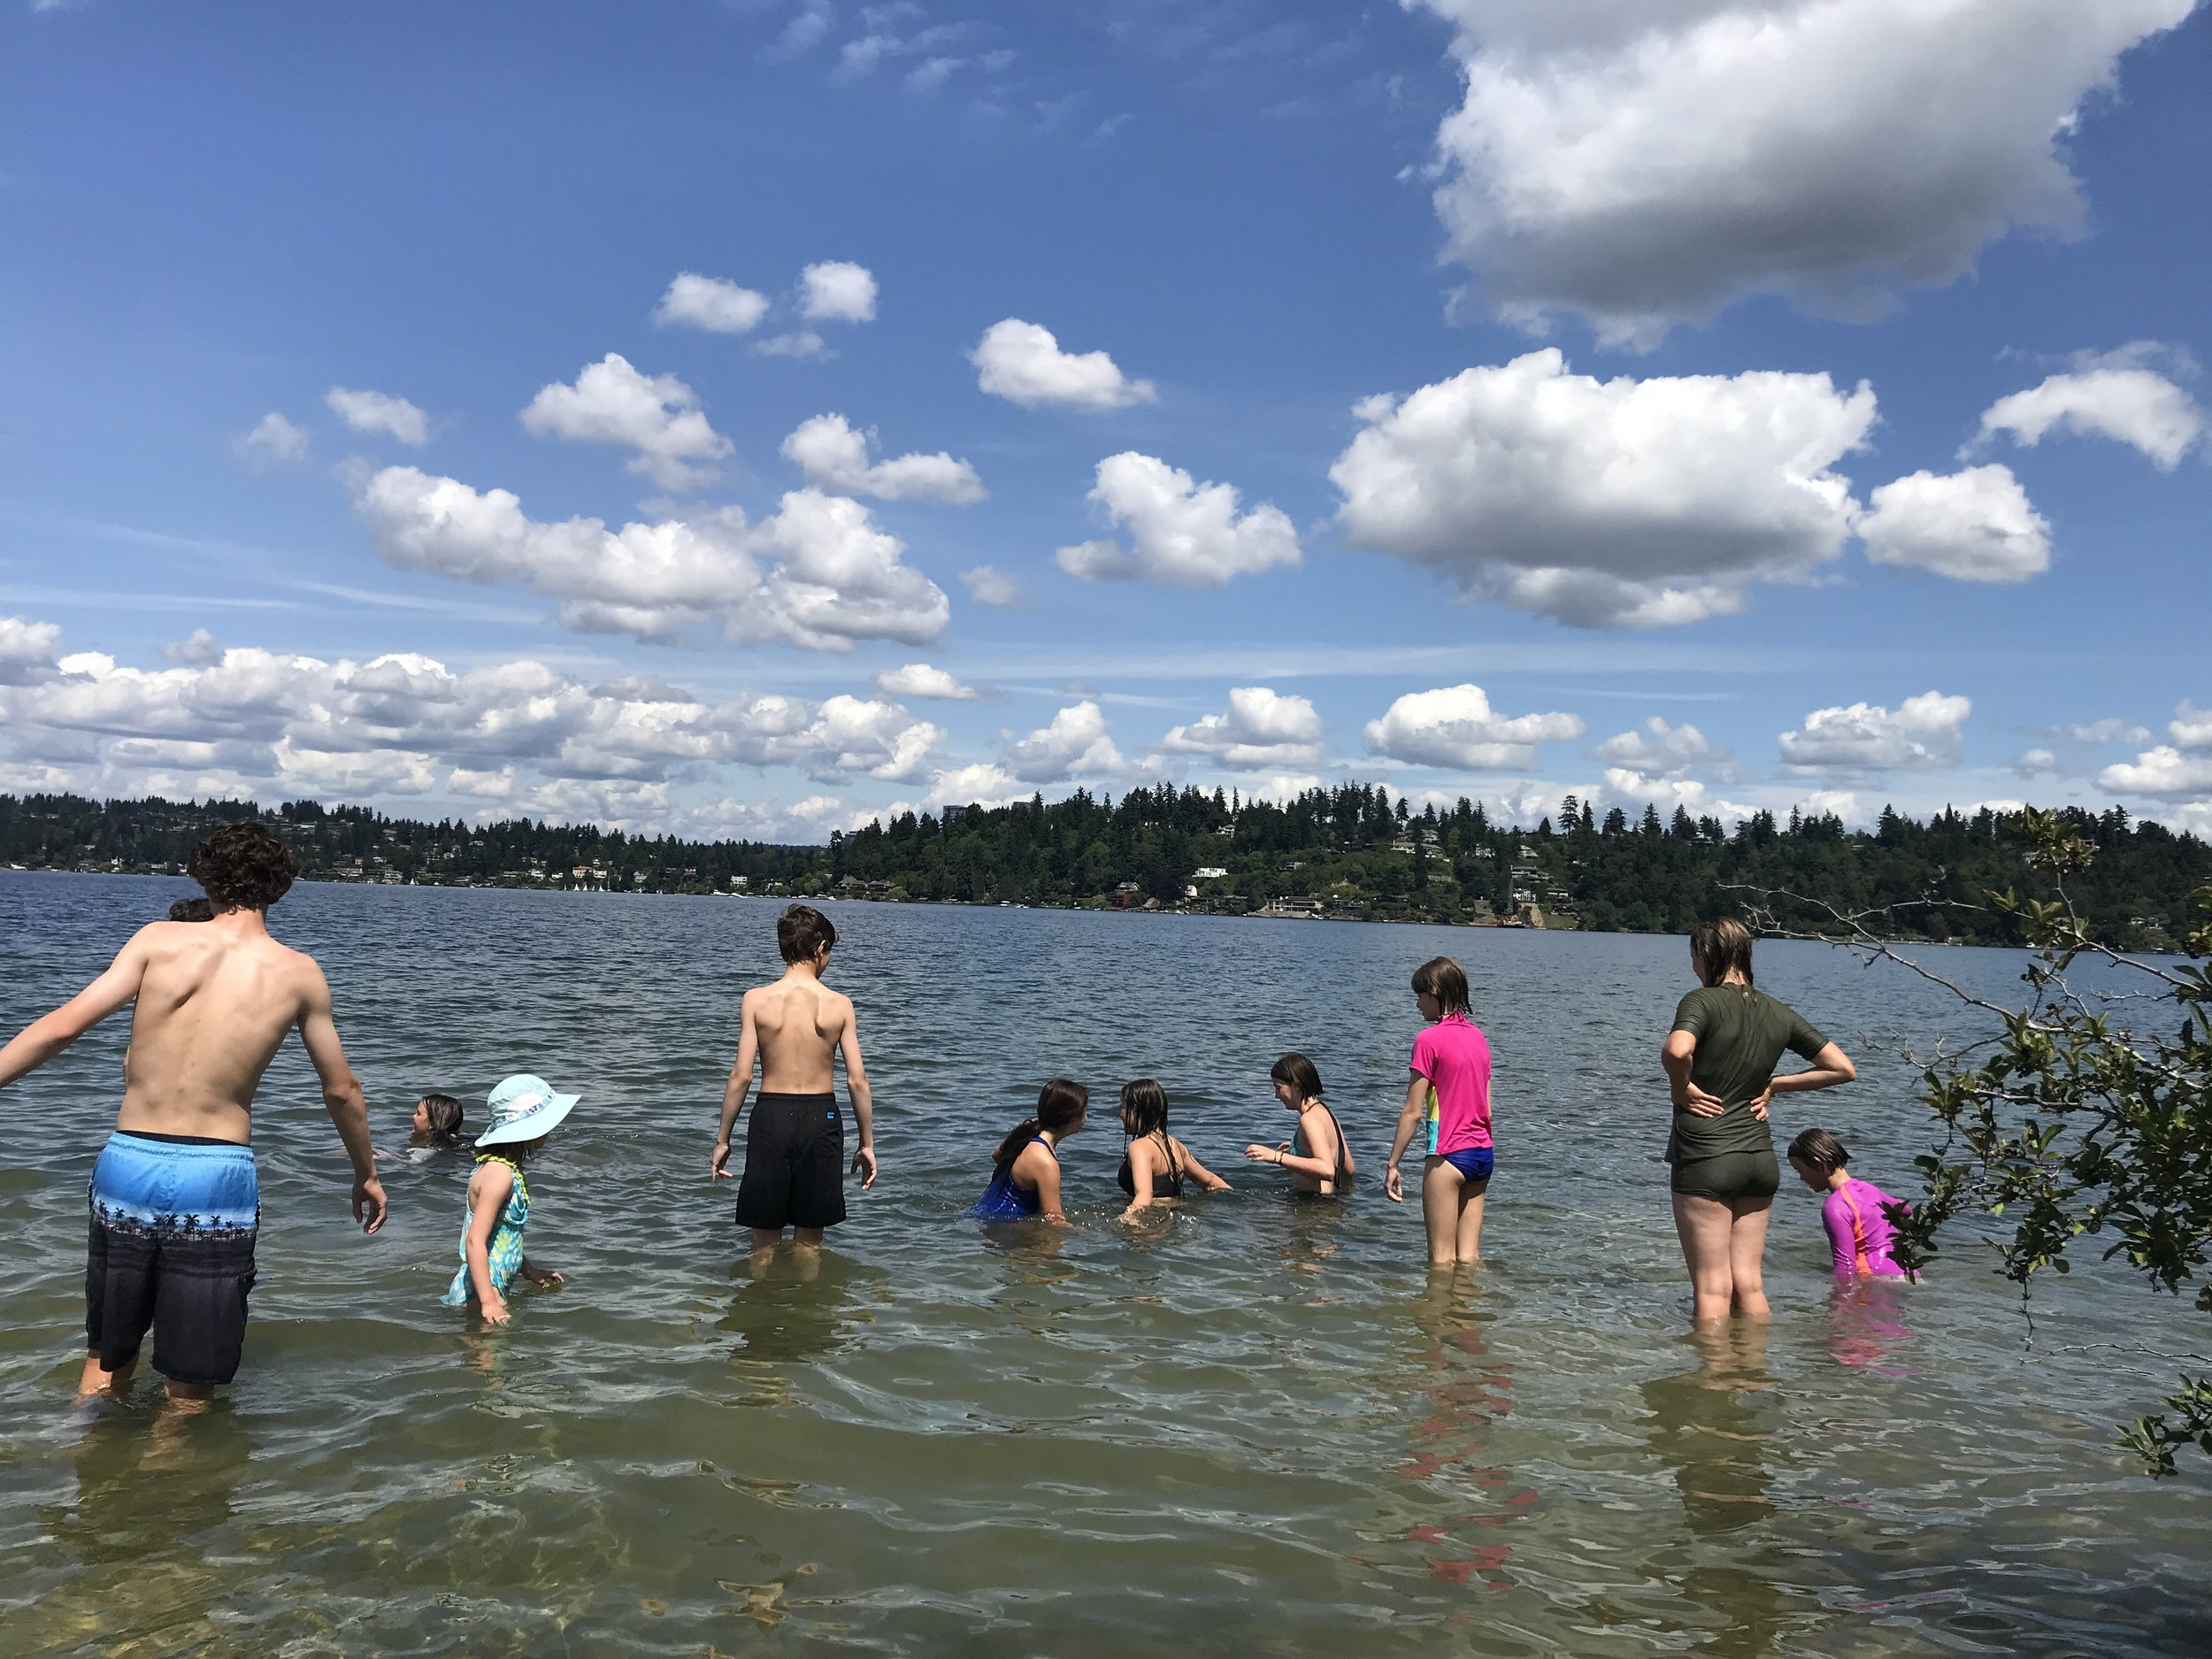 UPCOMING EVENTS for the Homeschool Stewardship Squad   (2nd Thursdays & 4th Wednesdays 11-2)   Thurs 8/8: Luther Burbank Park, Mercer Island *swimming* MTSGT Wed 8/28: Tolt-Macdonald, Carnation, KC Parks *swimming* Thurs 9/12: Belmondo Reach, Renton, KC Parks *swimming/salmon* Wed 9/25: O'Grady Natural Area, Enumclaw, KC Parks *salmon*